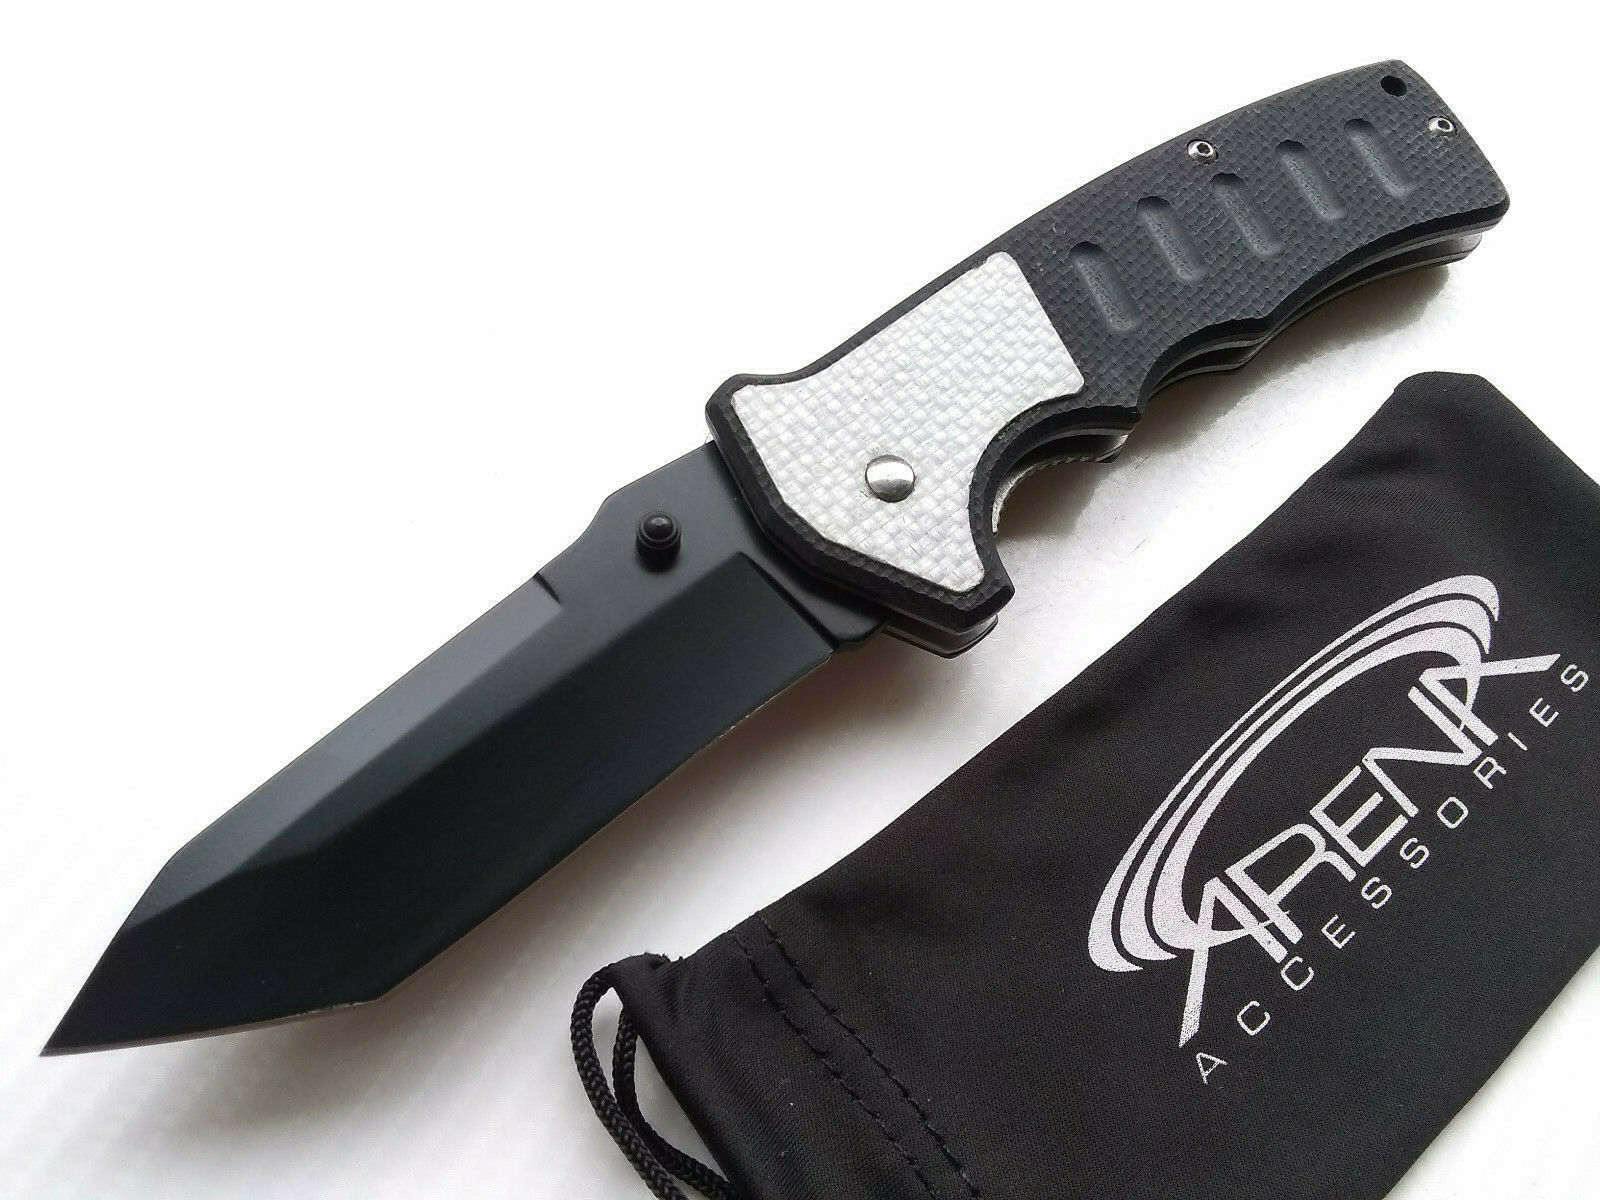 G10 & Silver Carbon Fiber Insert Manual Open Pocket Knife EDC Black Tanto Blade